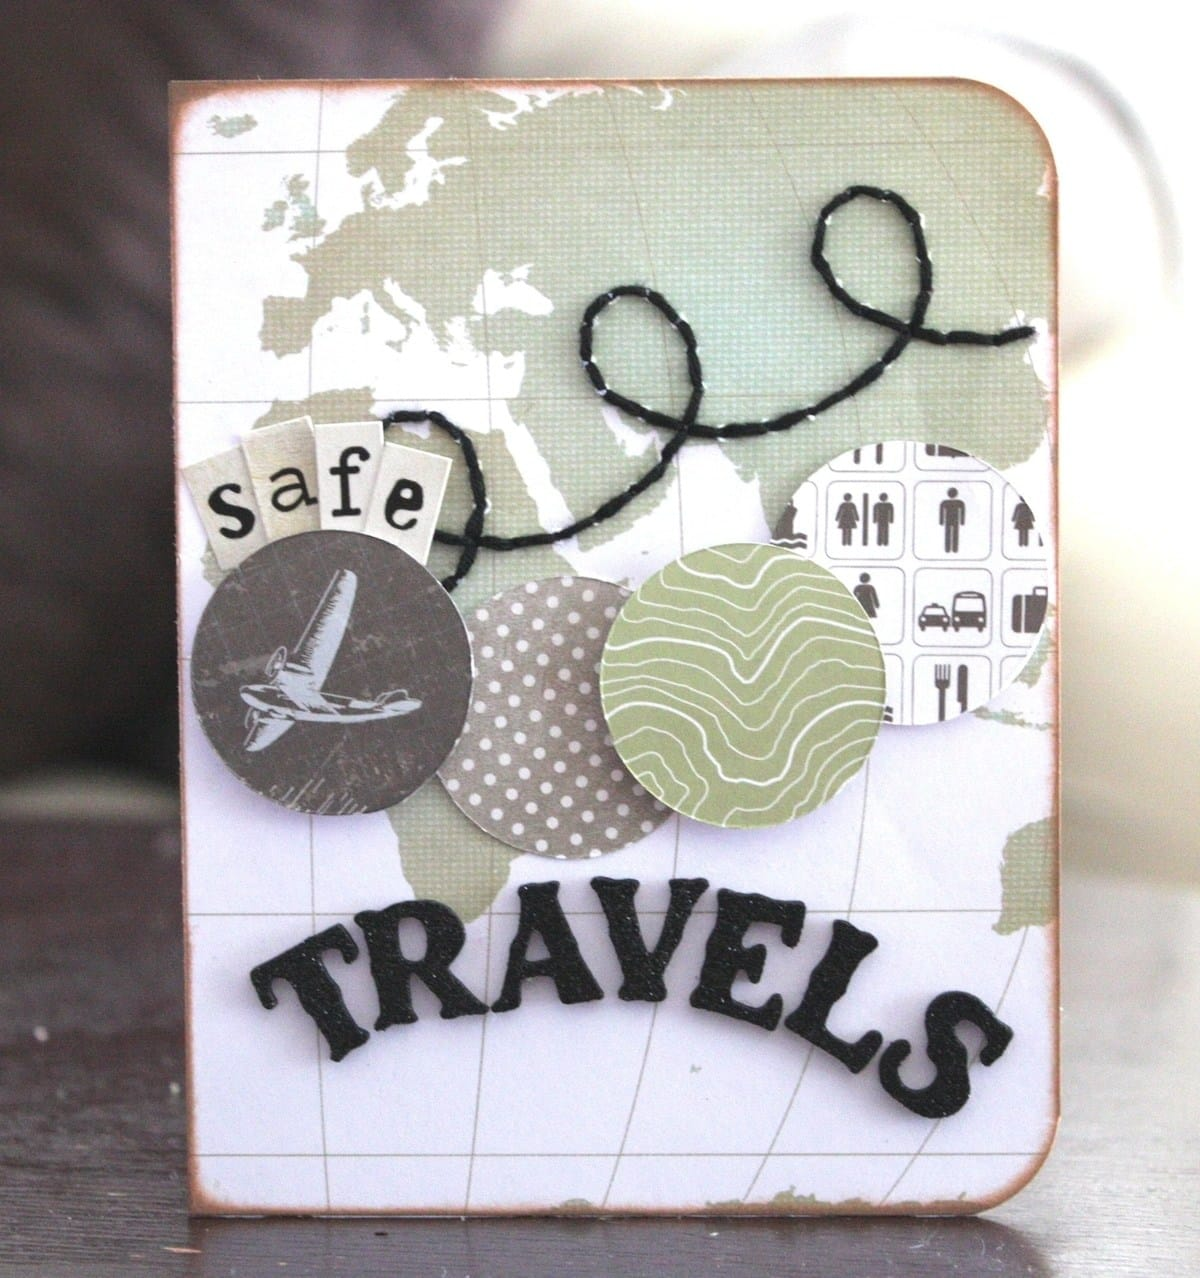 going abroad quotes quotes on journey quotes about traveling with friends travel wishes